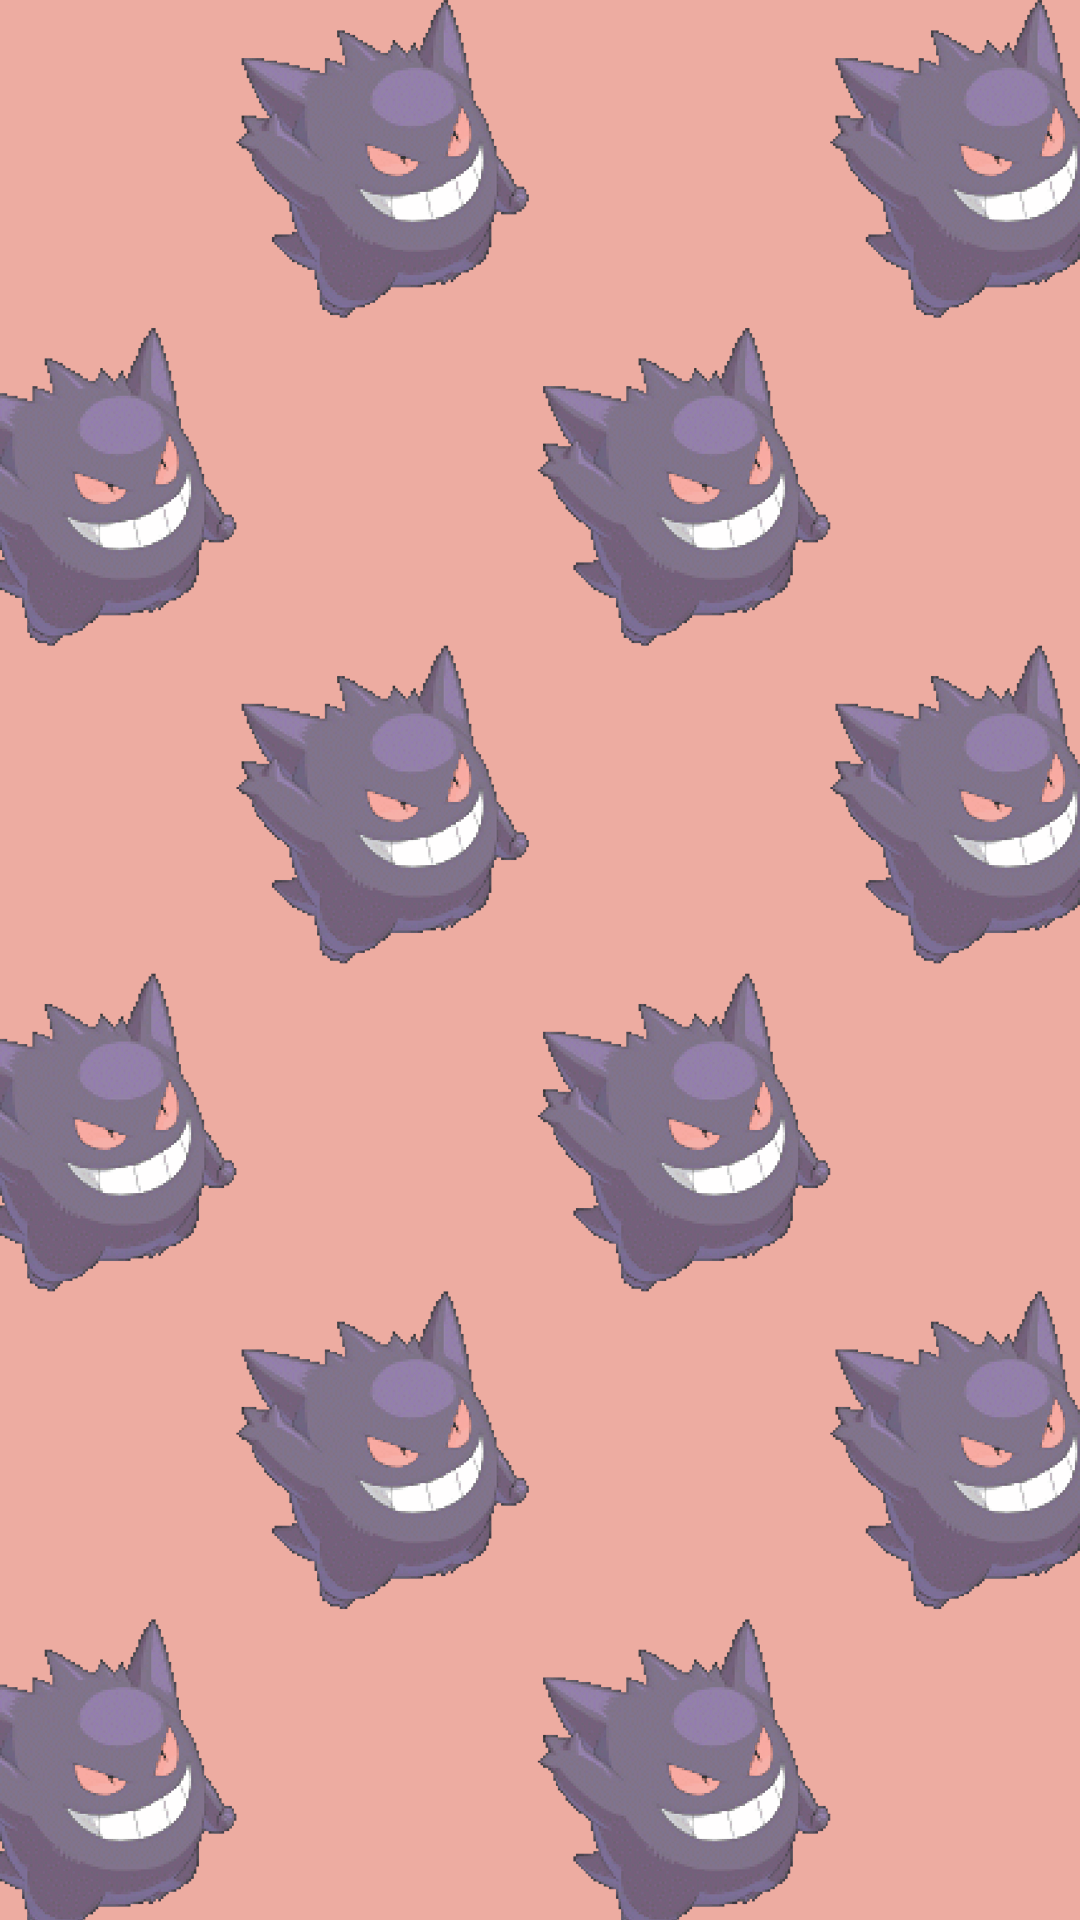 1080x1920 καθαρός — Gengar Phone Wallpapers [1080x1920] requested by...